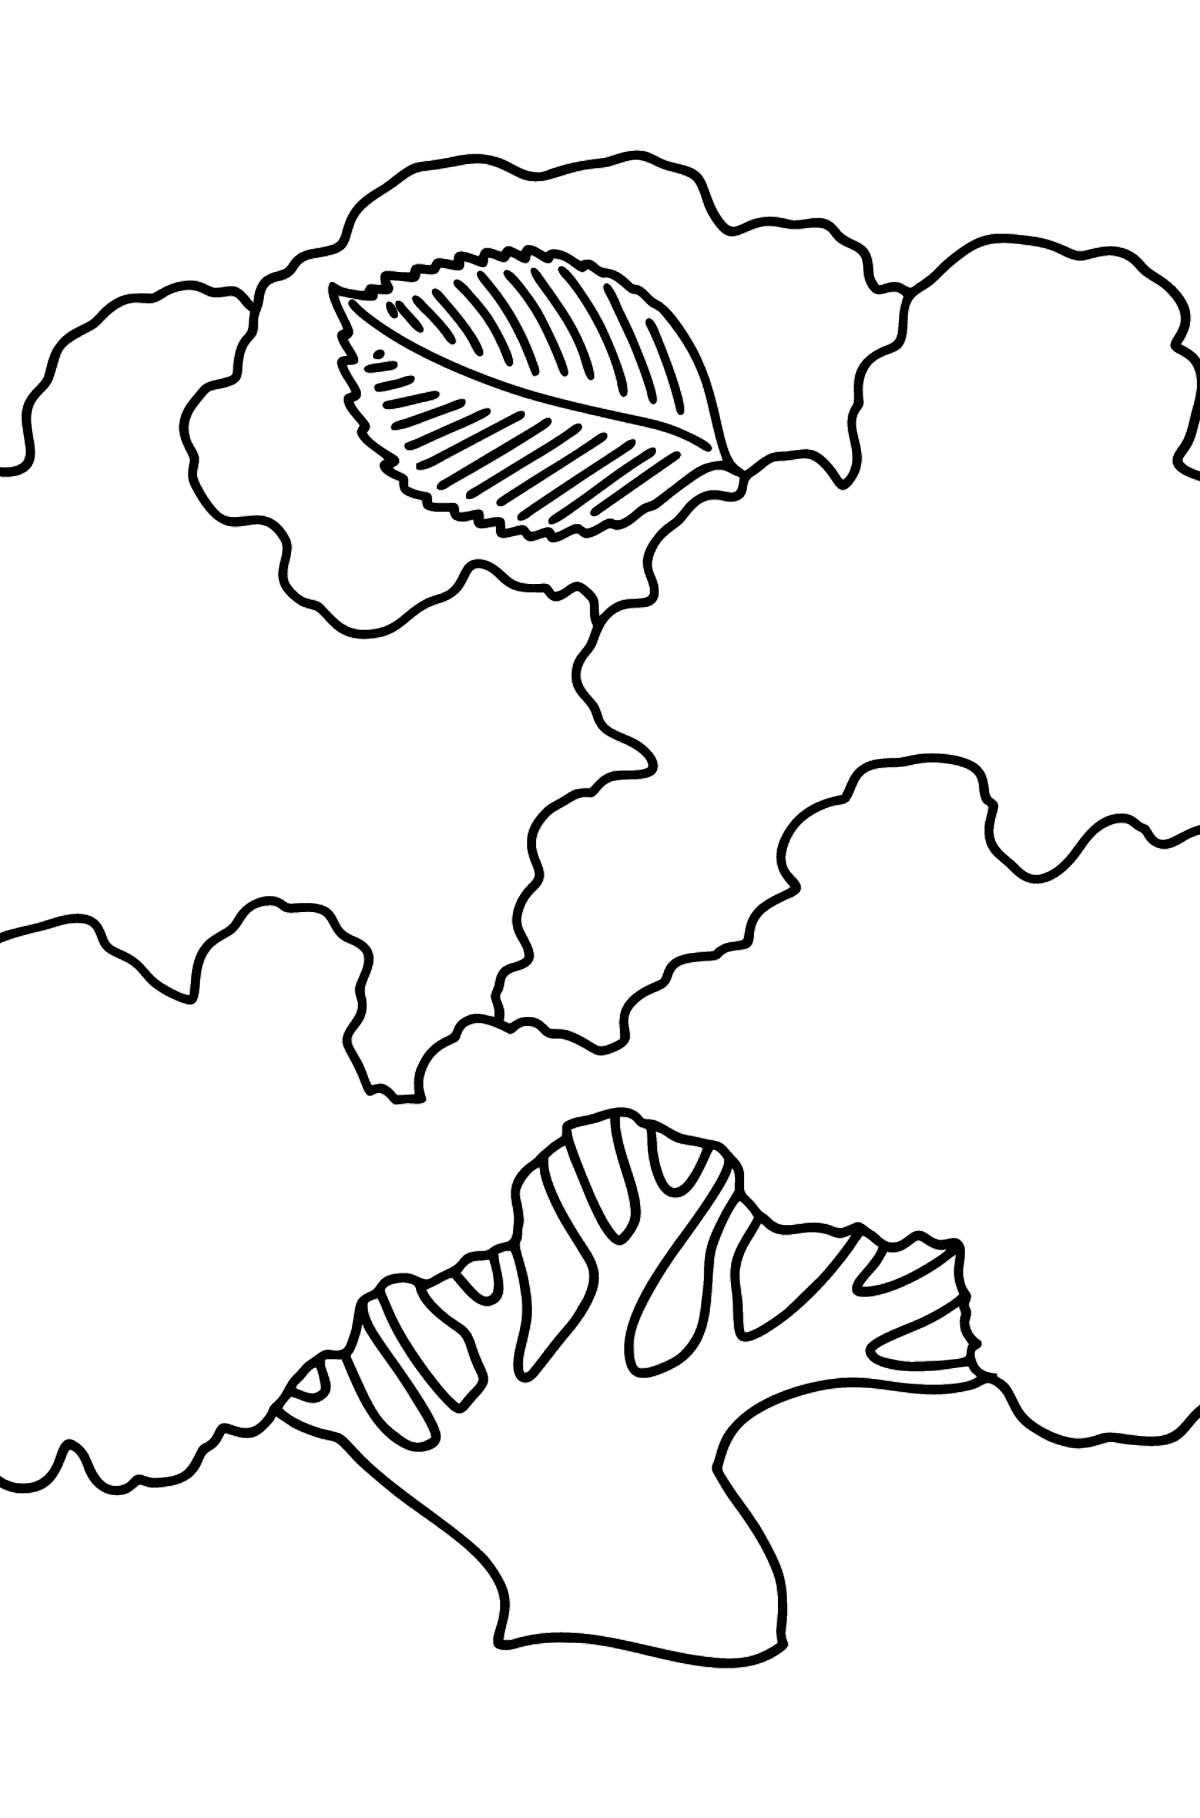 Elm coloring page - Coloring Pages for Kids